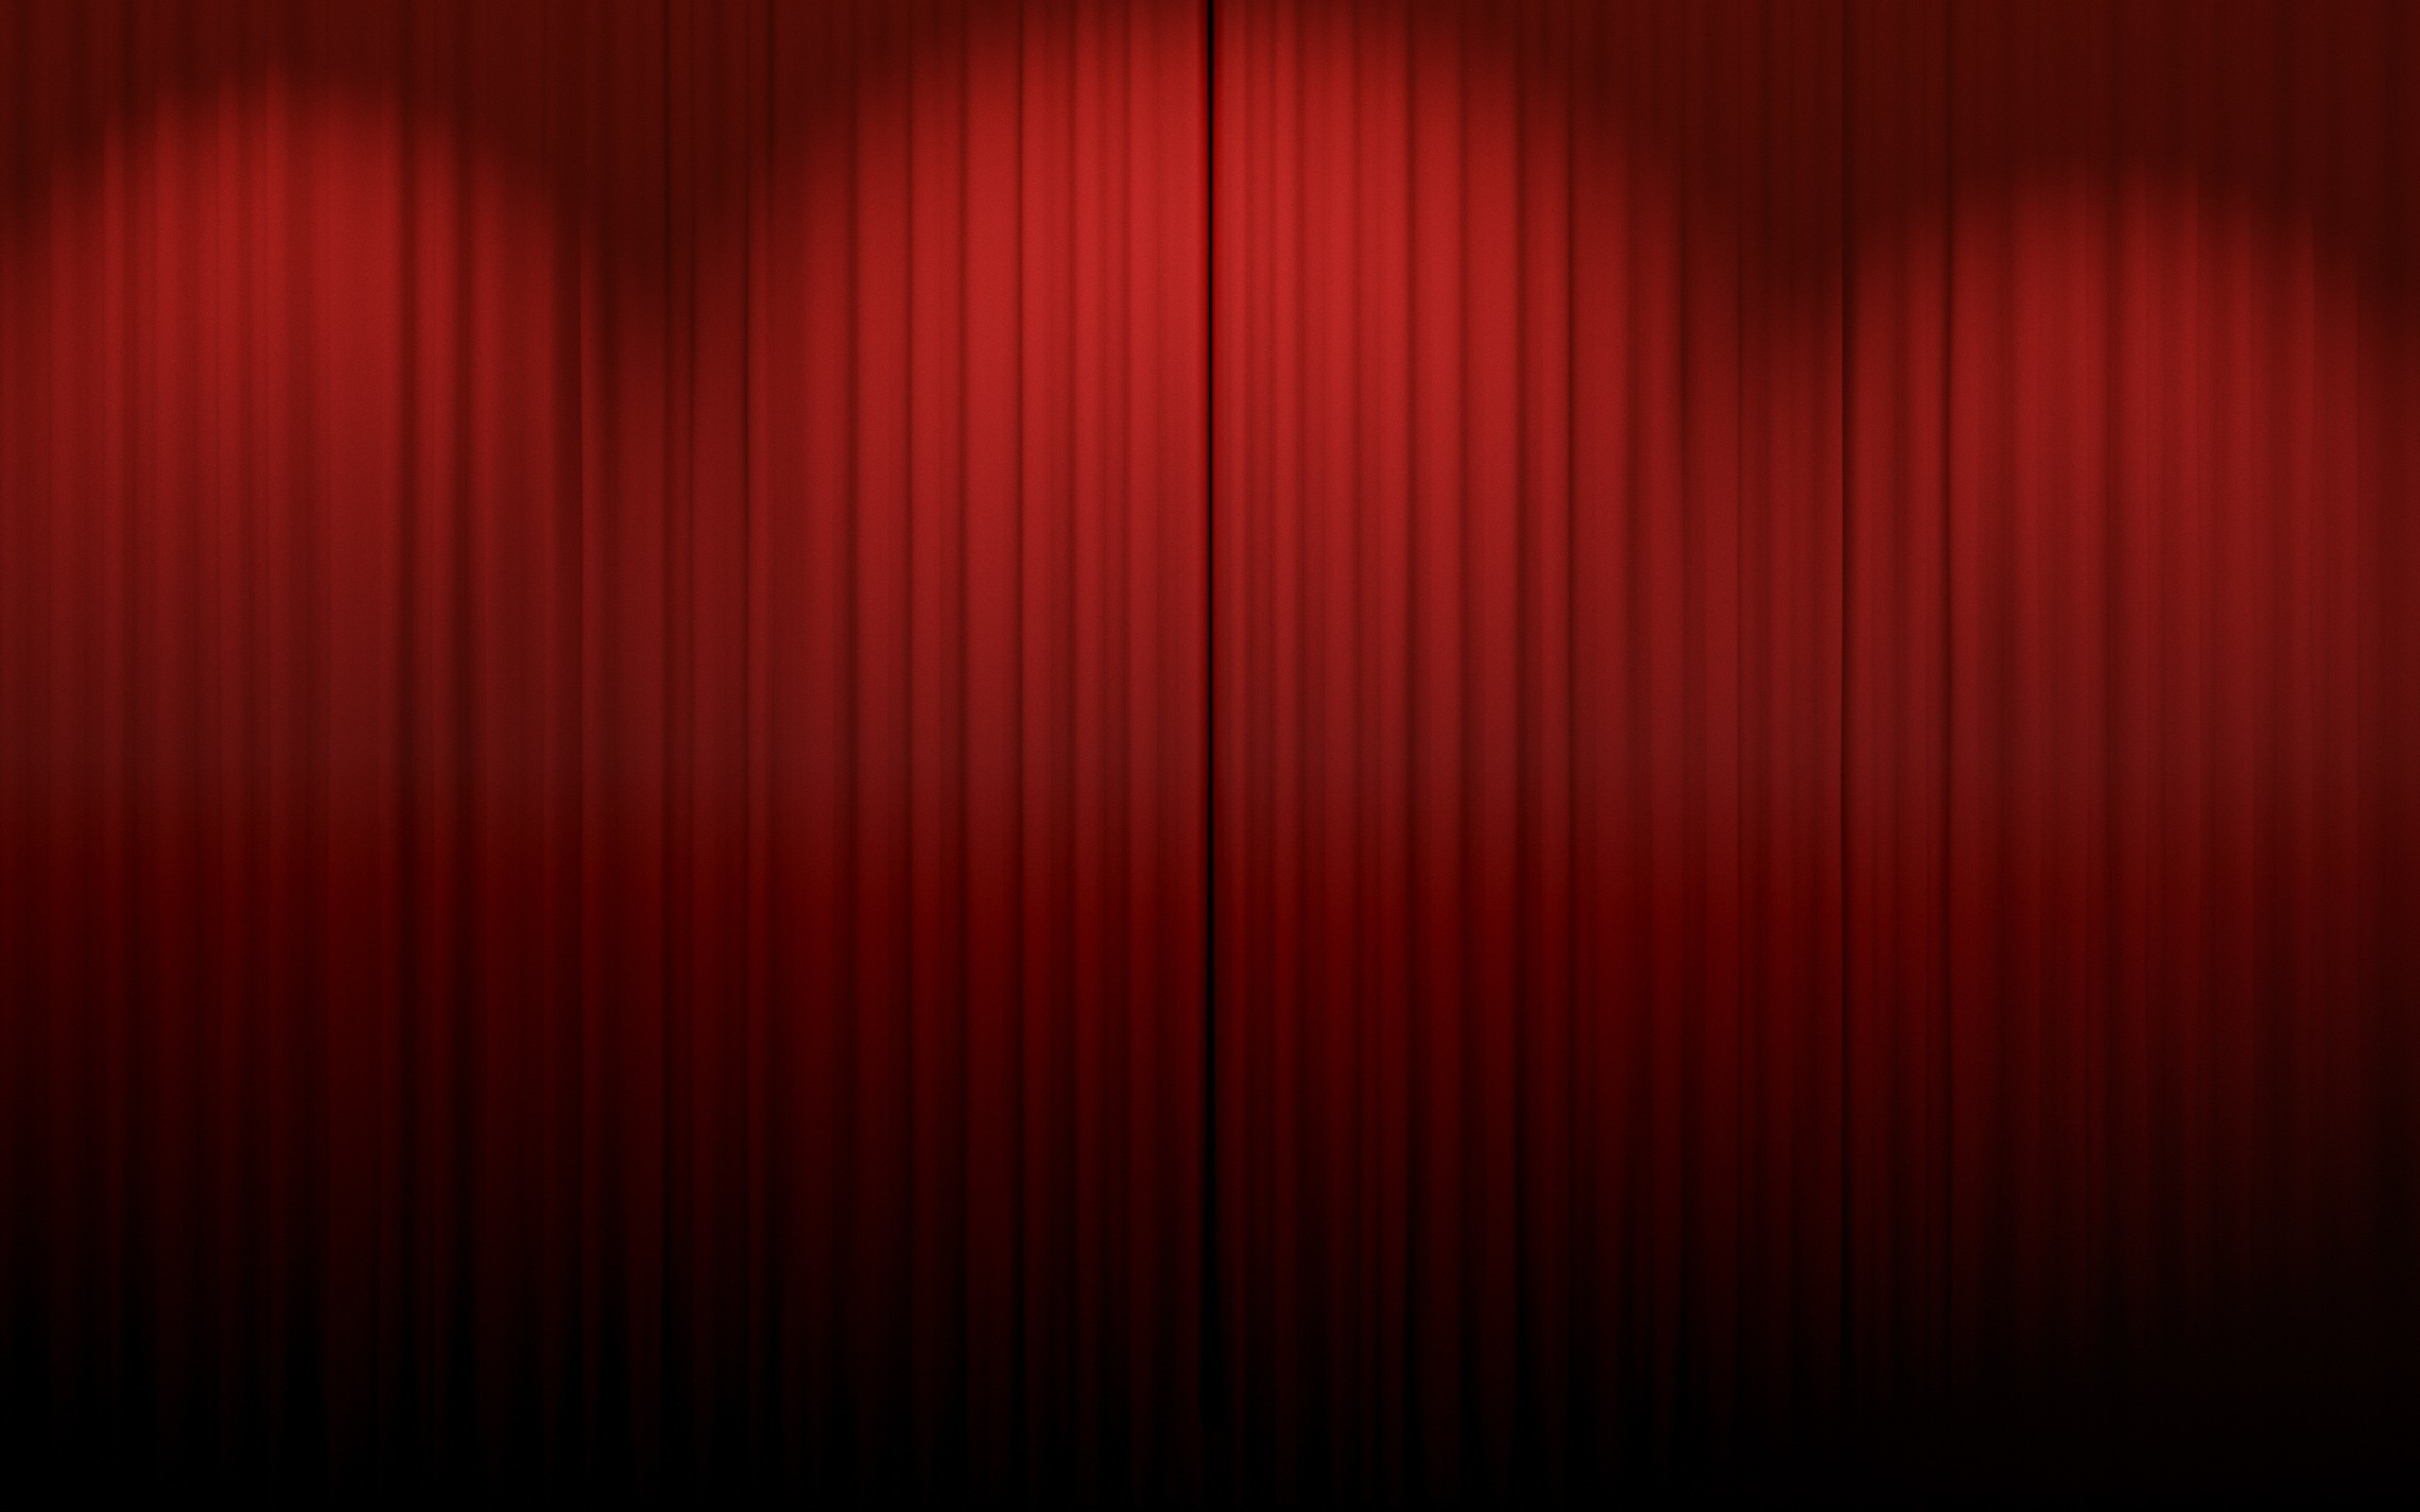 2560x1600 red-curtains_00302826.jpg (2560×1600)